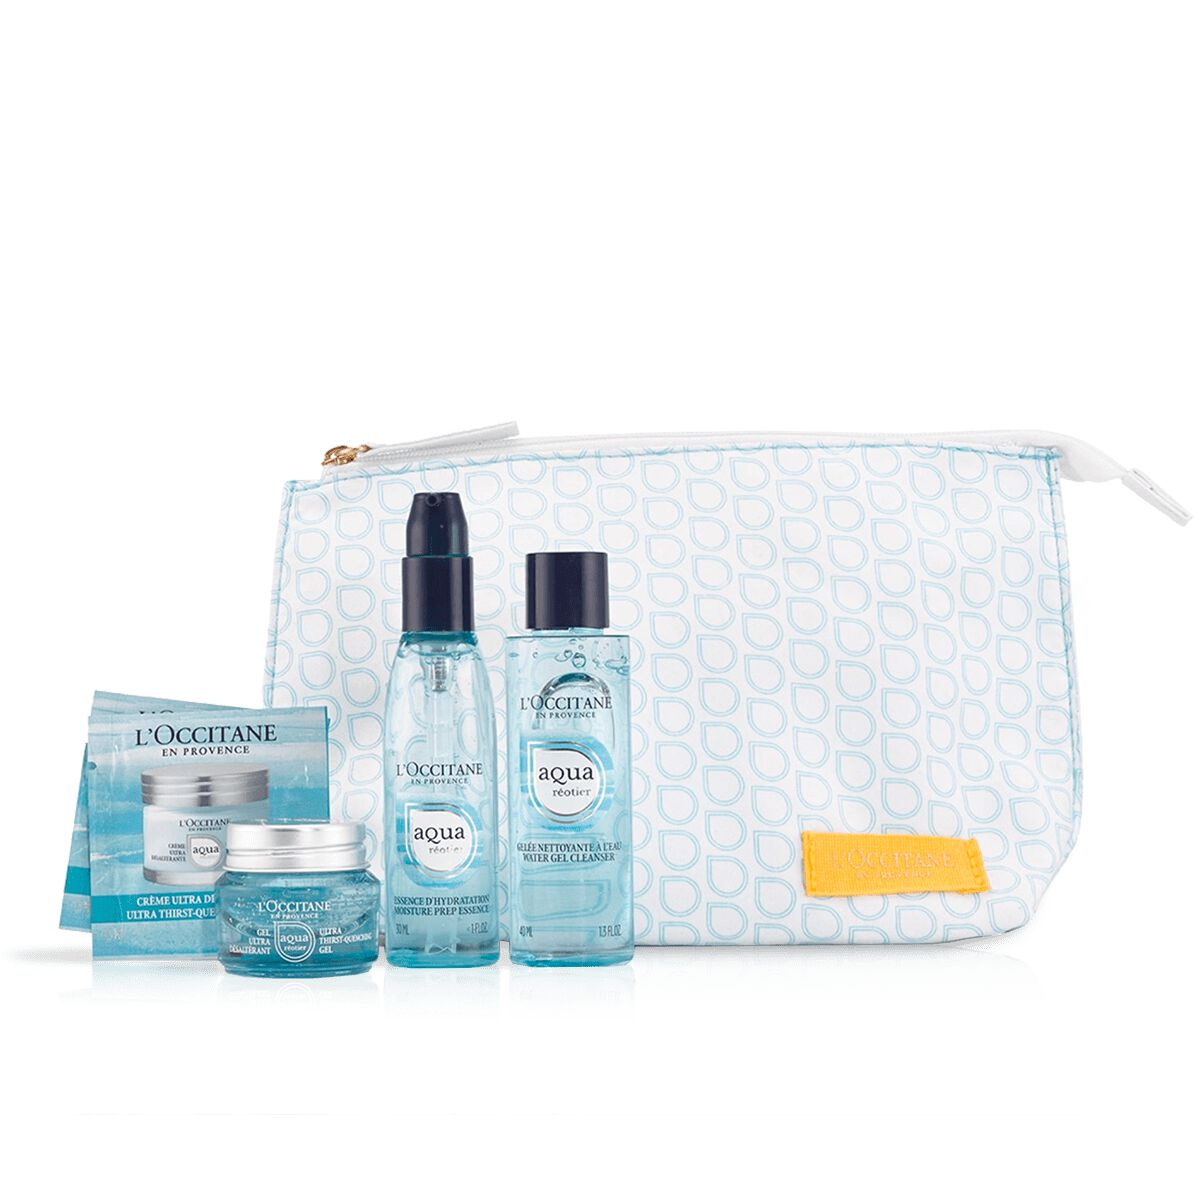 Hydration Skincare Discovery Set - L'OCCITANE